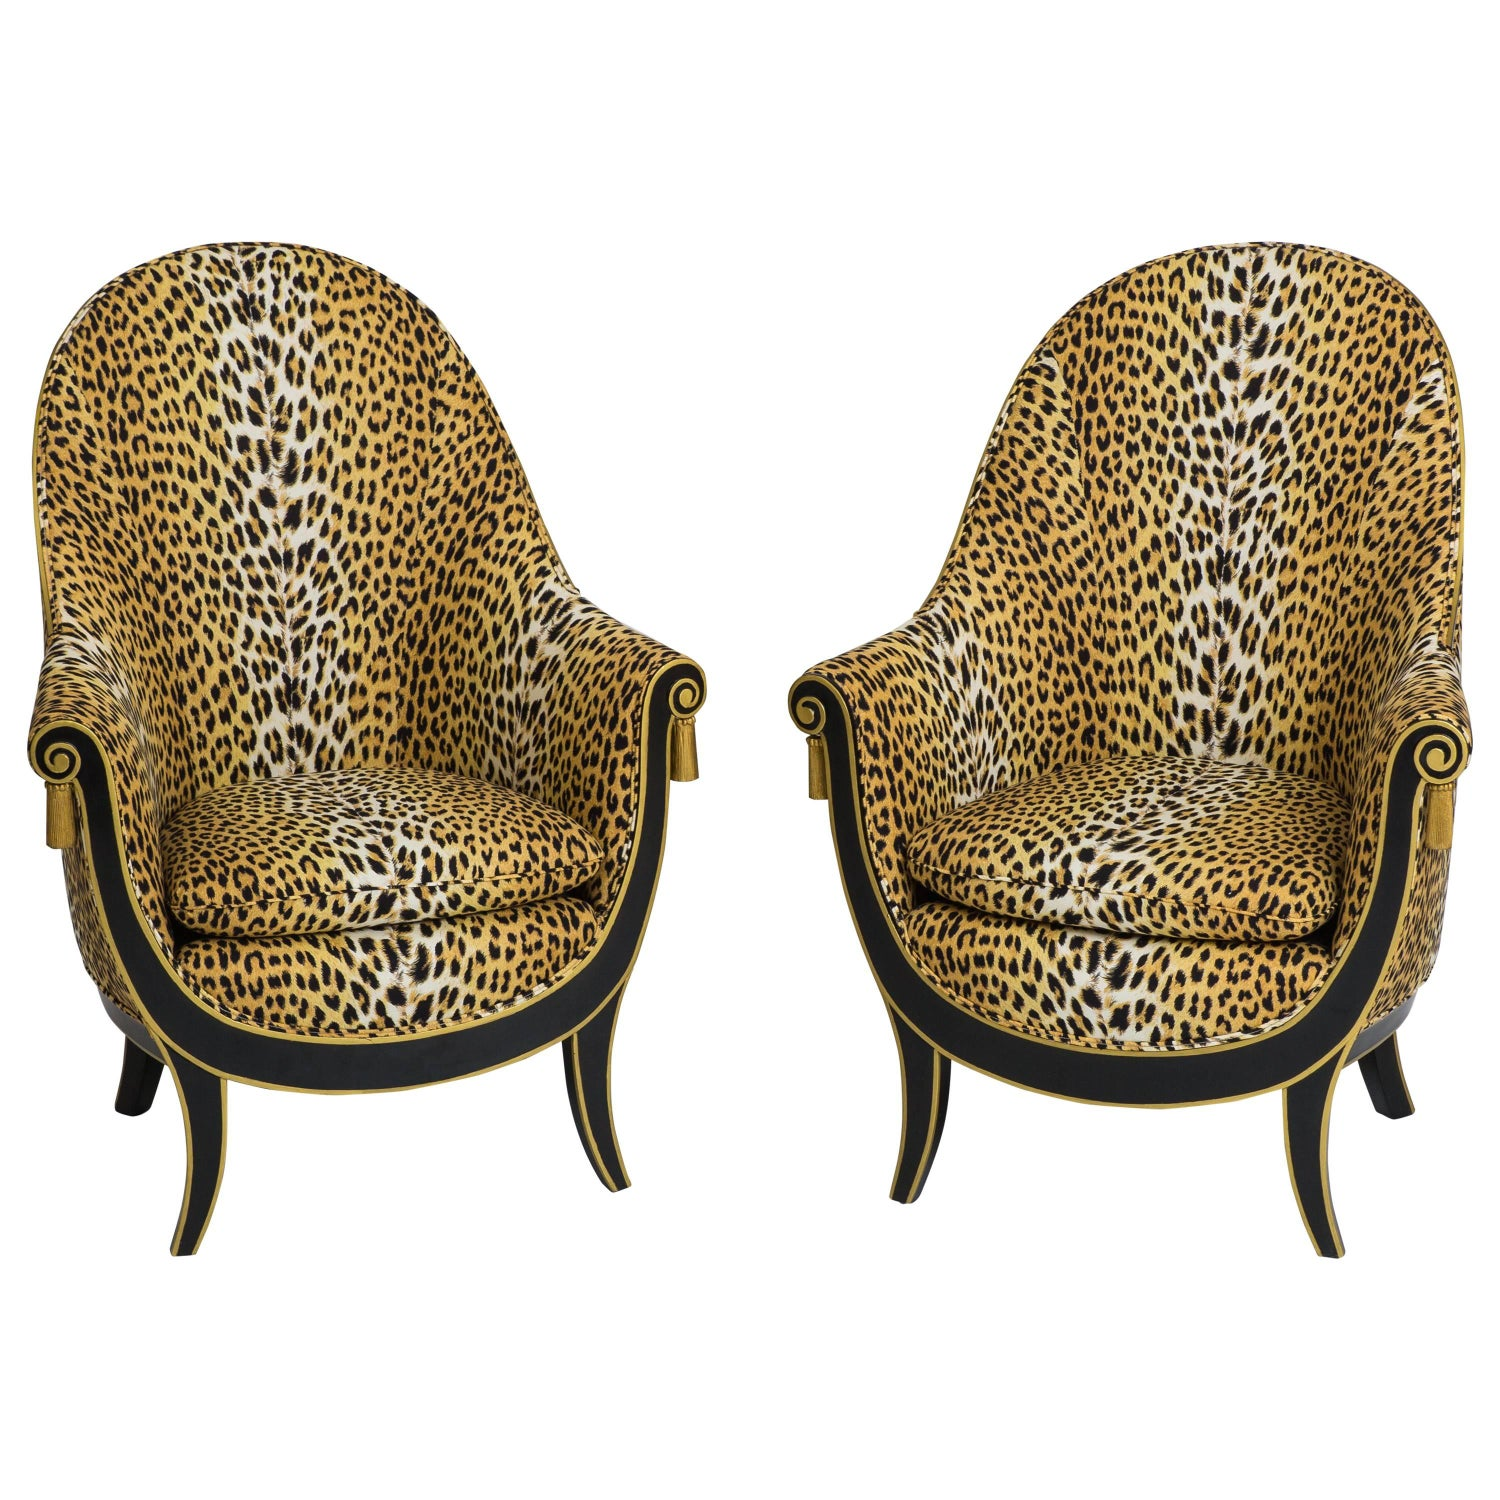 Antique and Vintage Bergere Chairs - 928 For Sale at 1stdibs